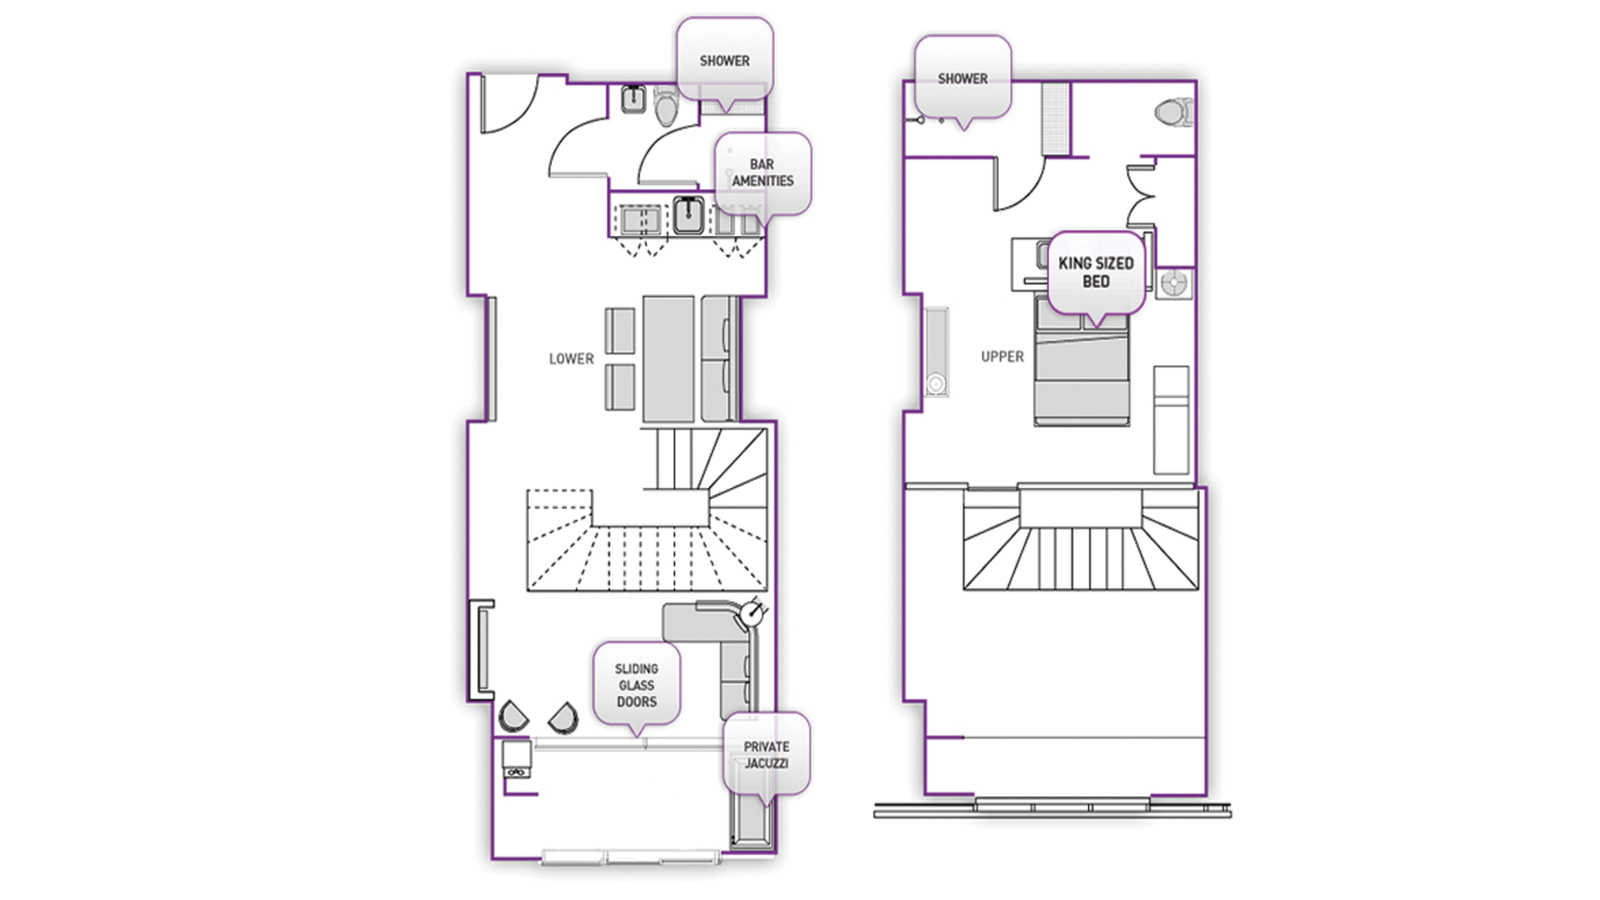 Lanai Suite Floor Plan - updated